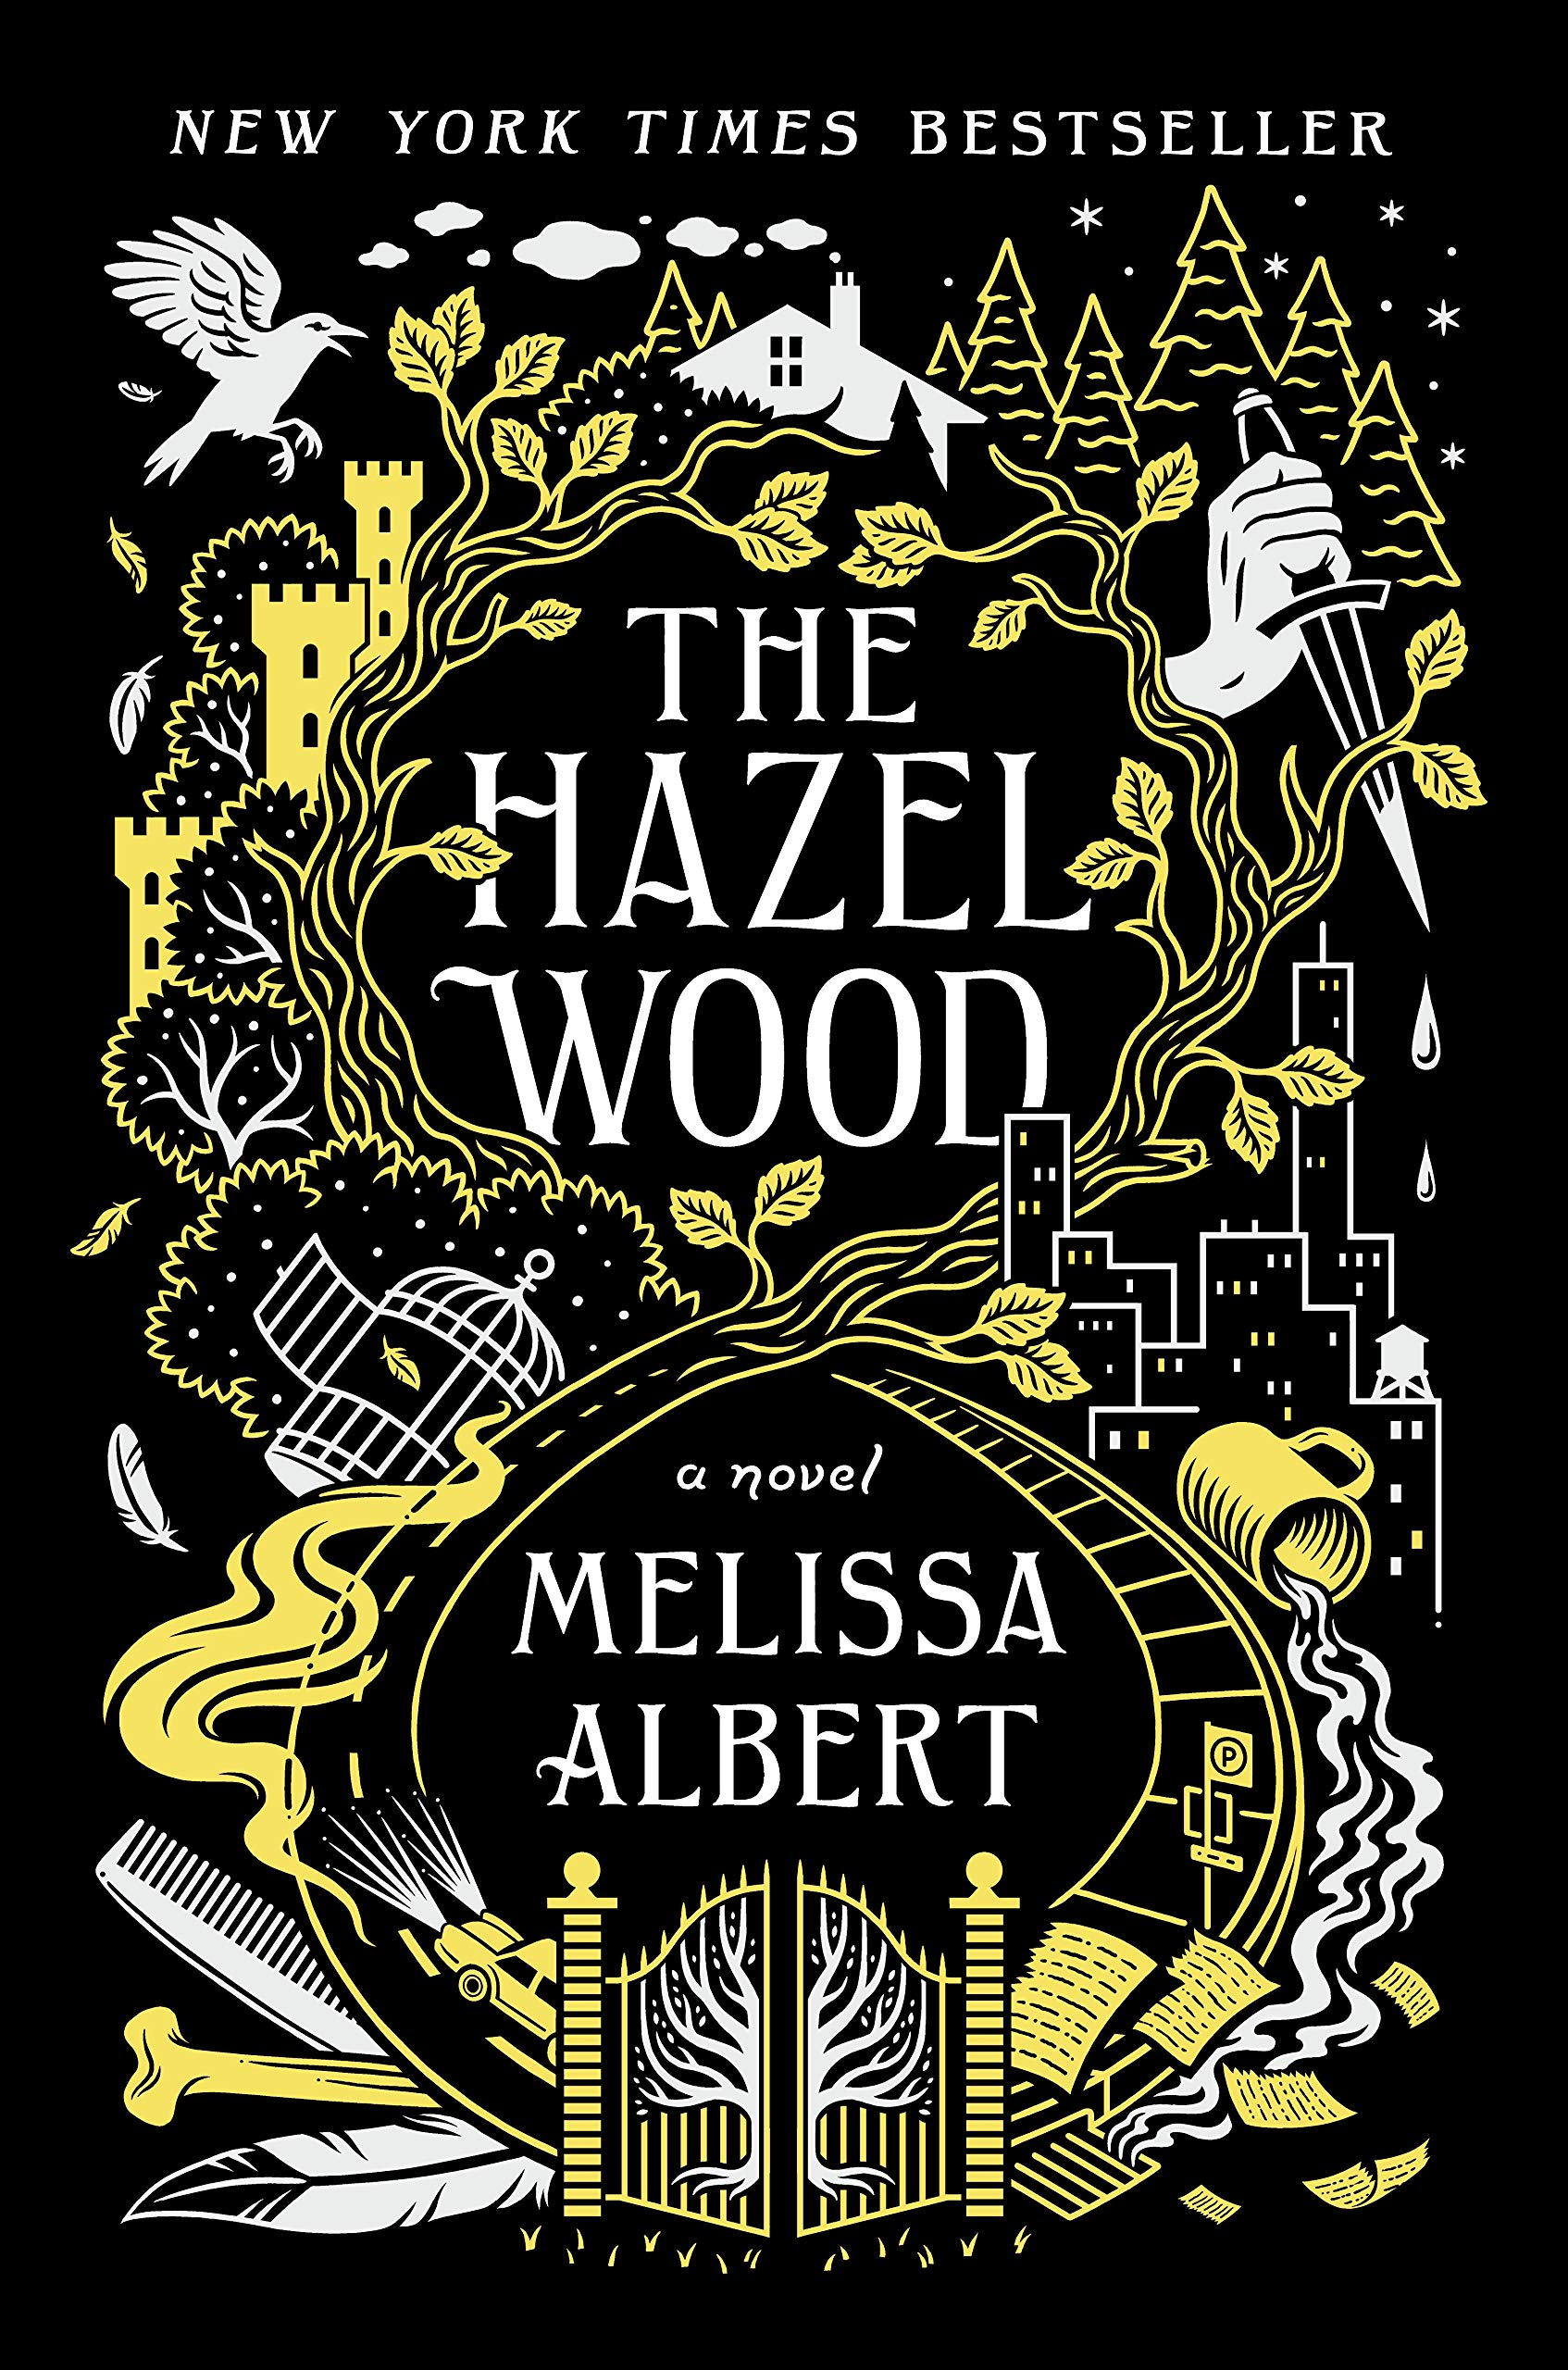 Amazon.com: The Hazel Wood: A Novel (9781250297327): Albert ...